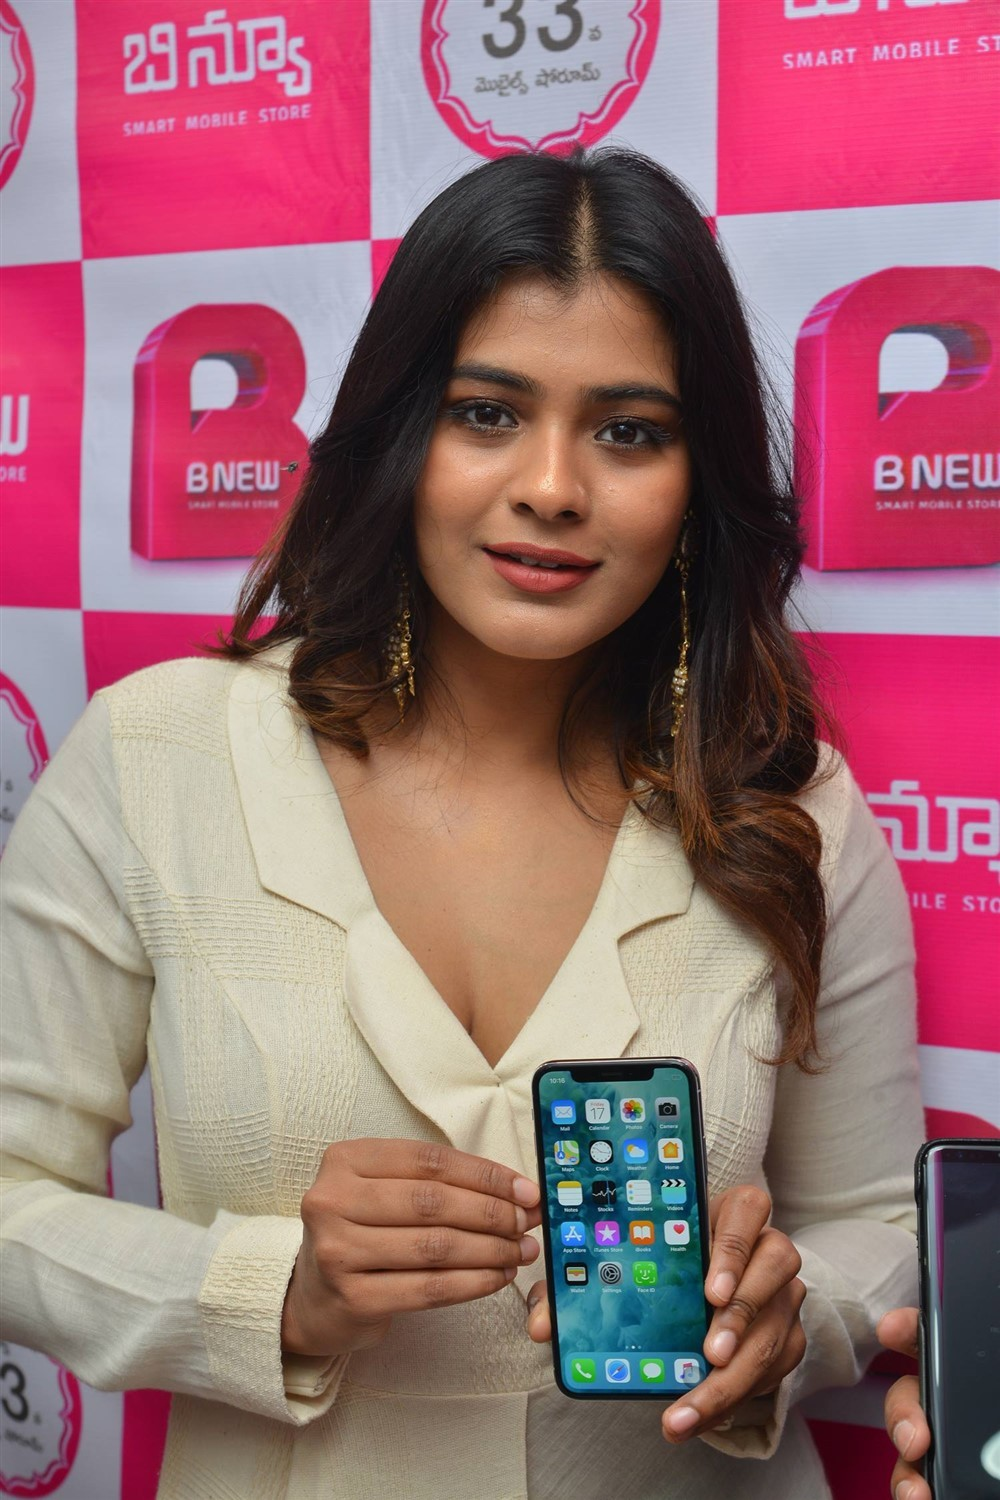 Hebah Patel,actress Hebah Patel,B New Mobile Store,Hebah Patel at B New Mobile Store,B New Mobile Store launch